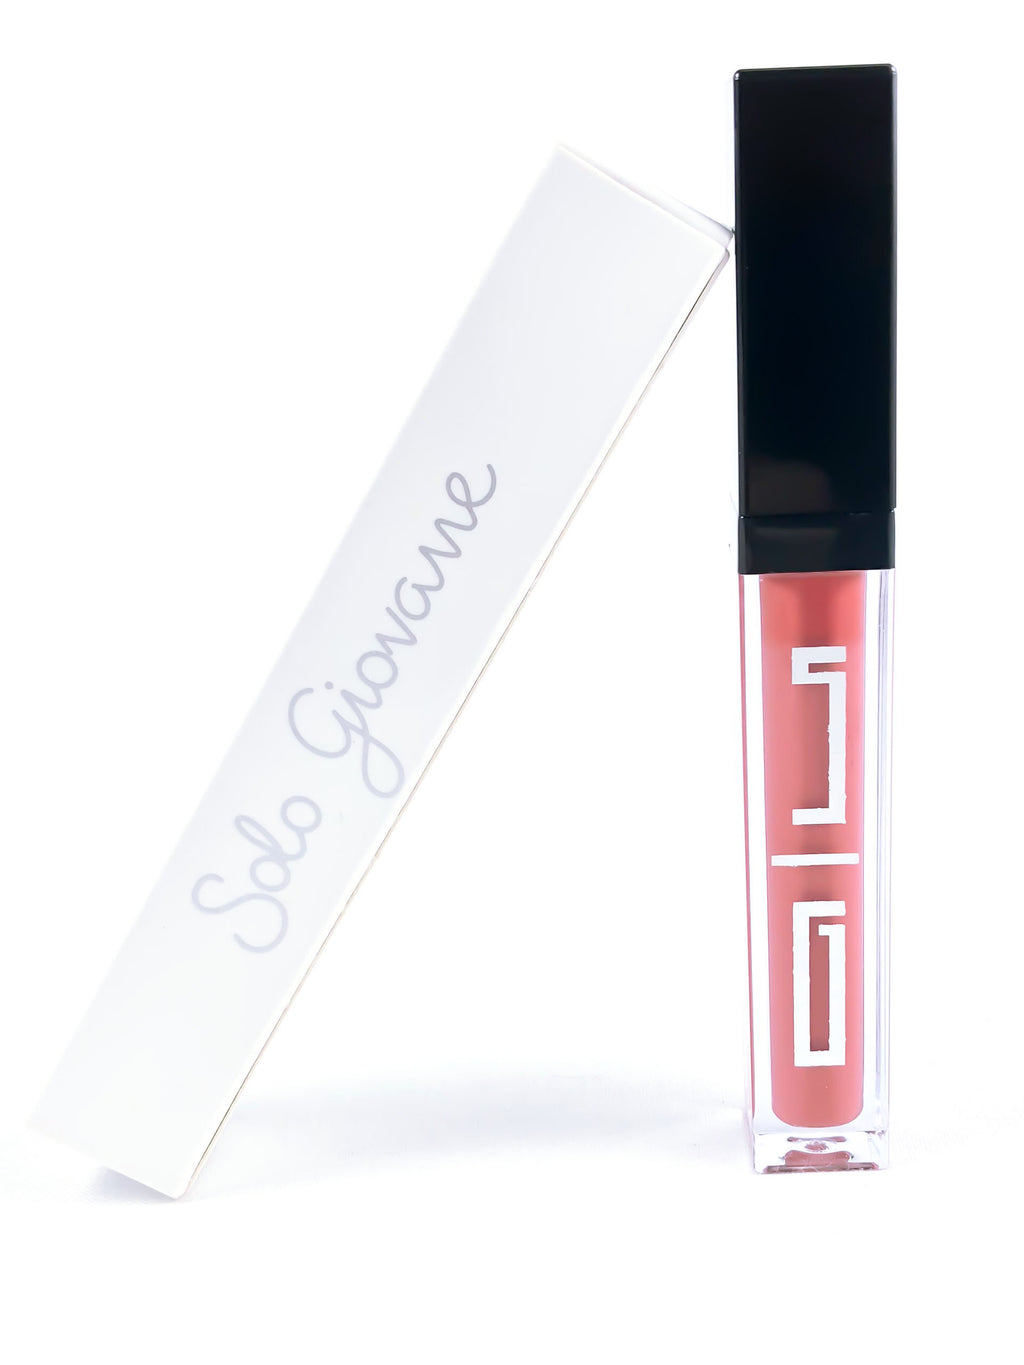 Glossy-Color Lip Cream #6 - BelCorner